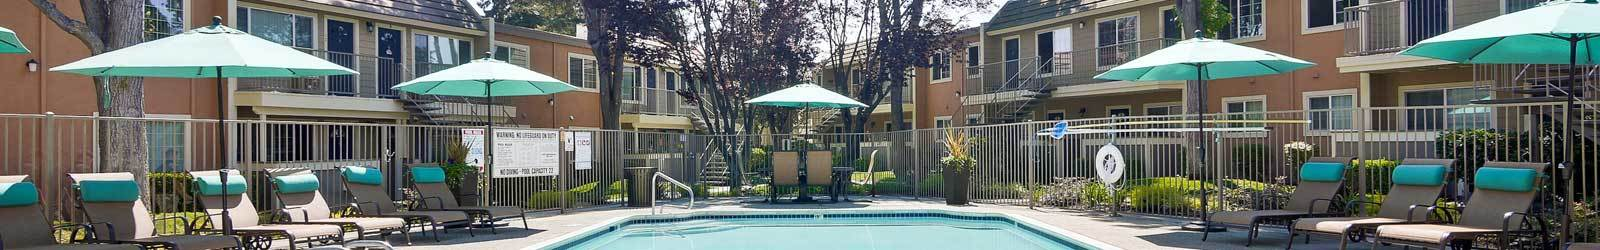 Studio, 1 and 2 bedrooms offered at apartments in San Jose